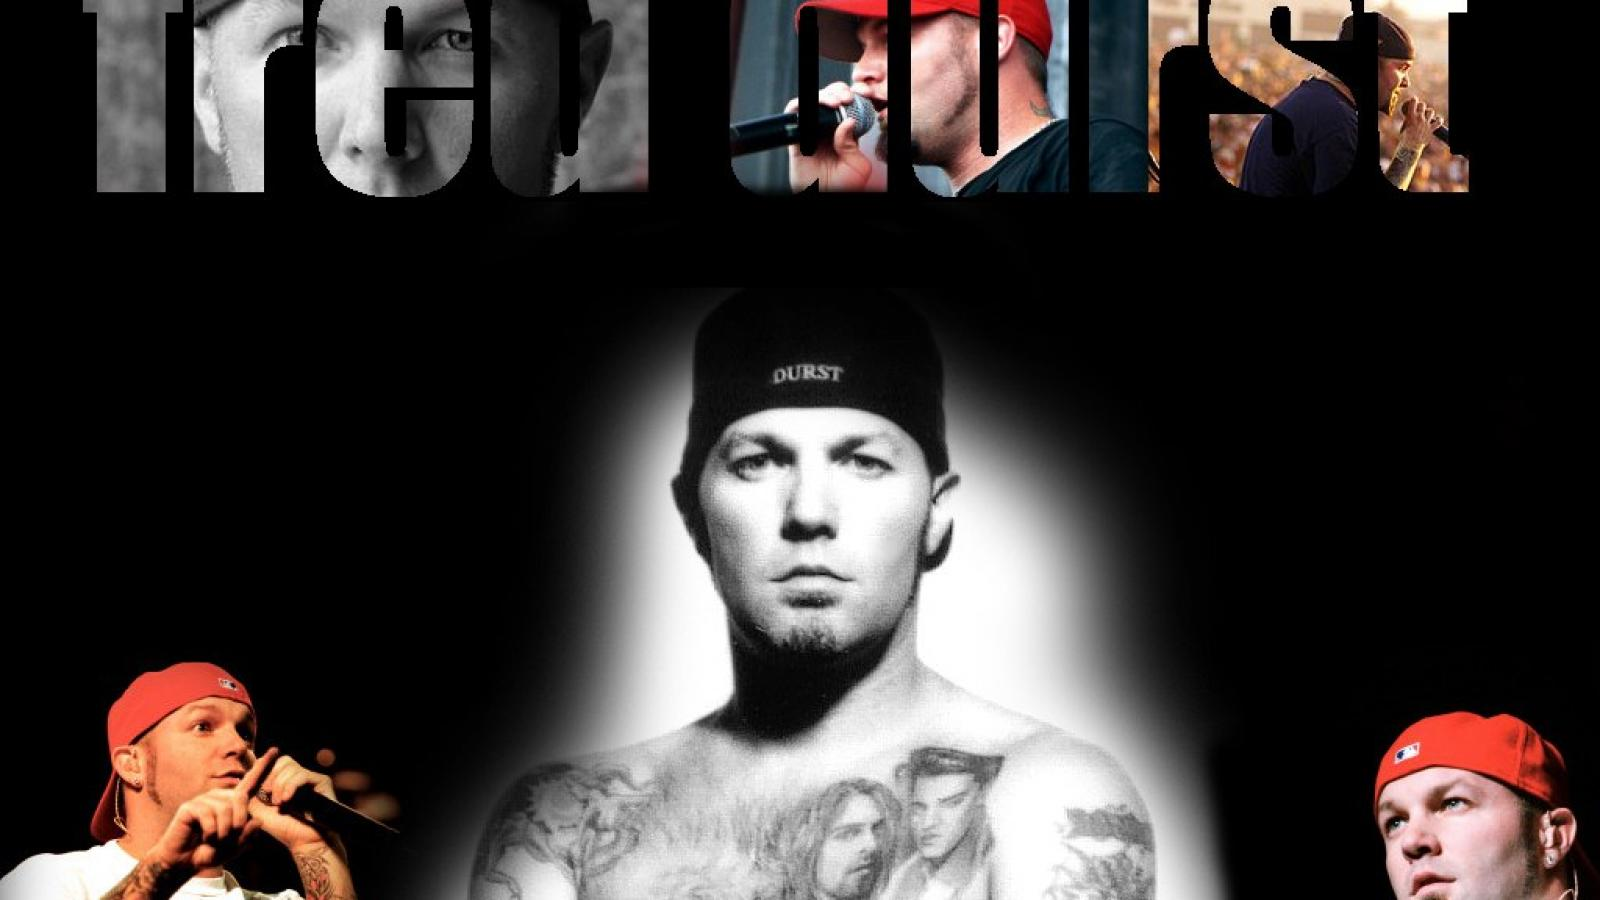 Fred Durst Wallpaper 1600x900